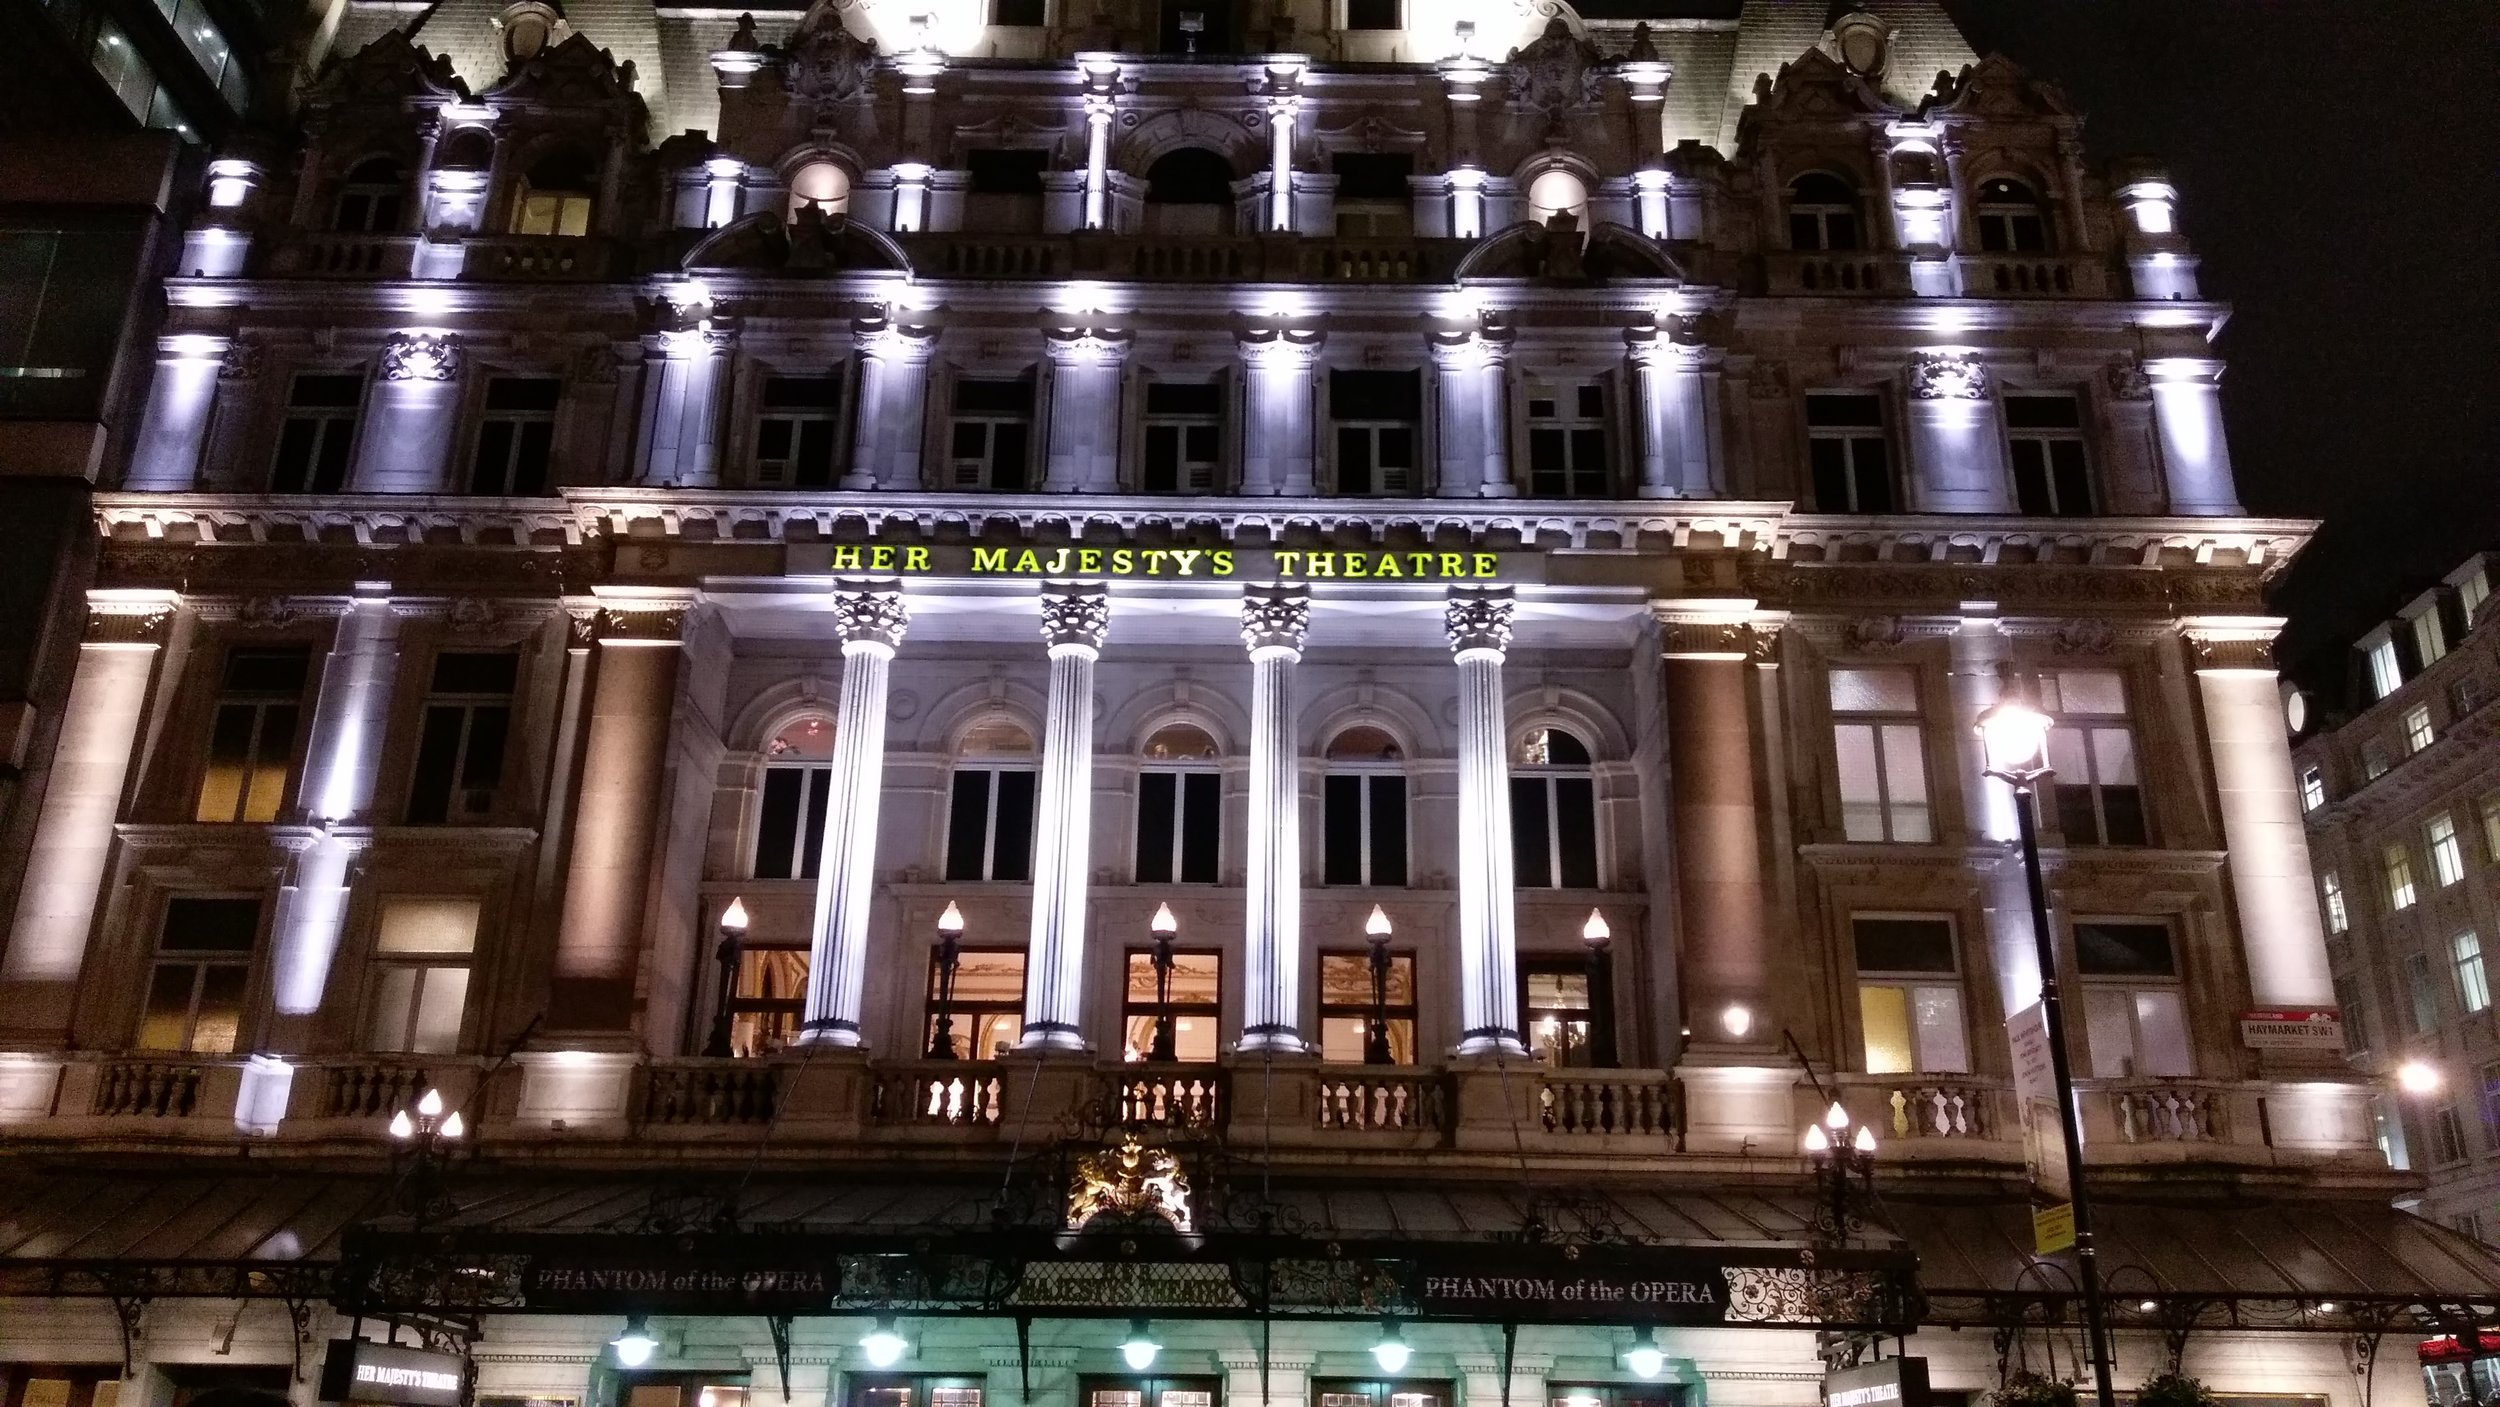 Her Majesty's Theatre - visited 11/02/2019